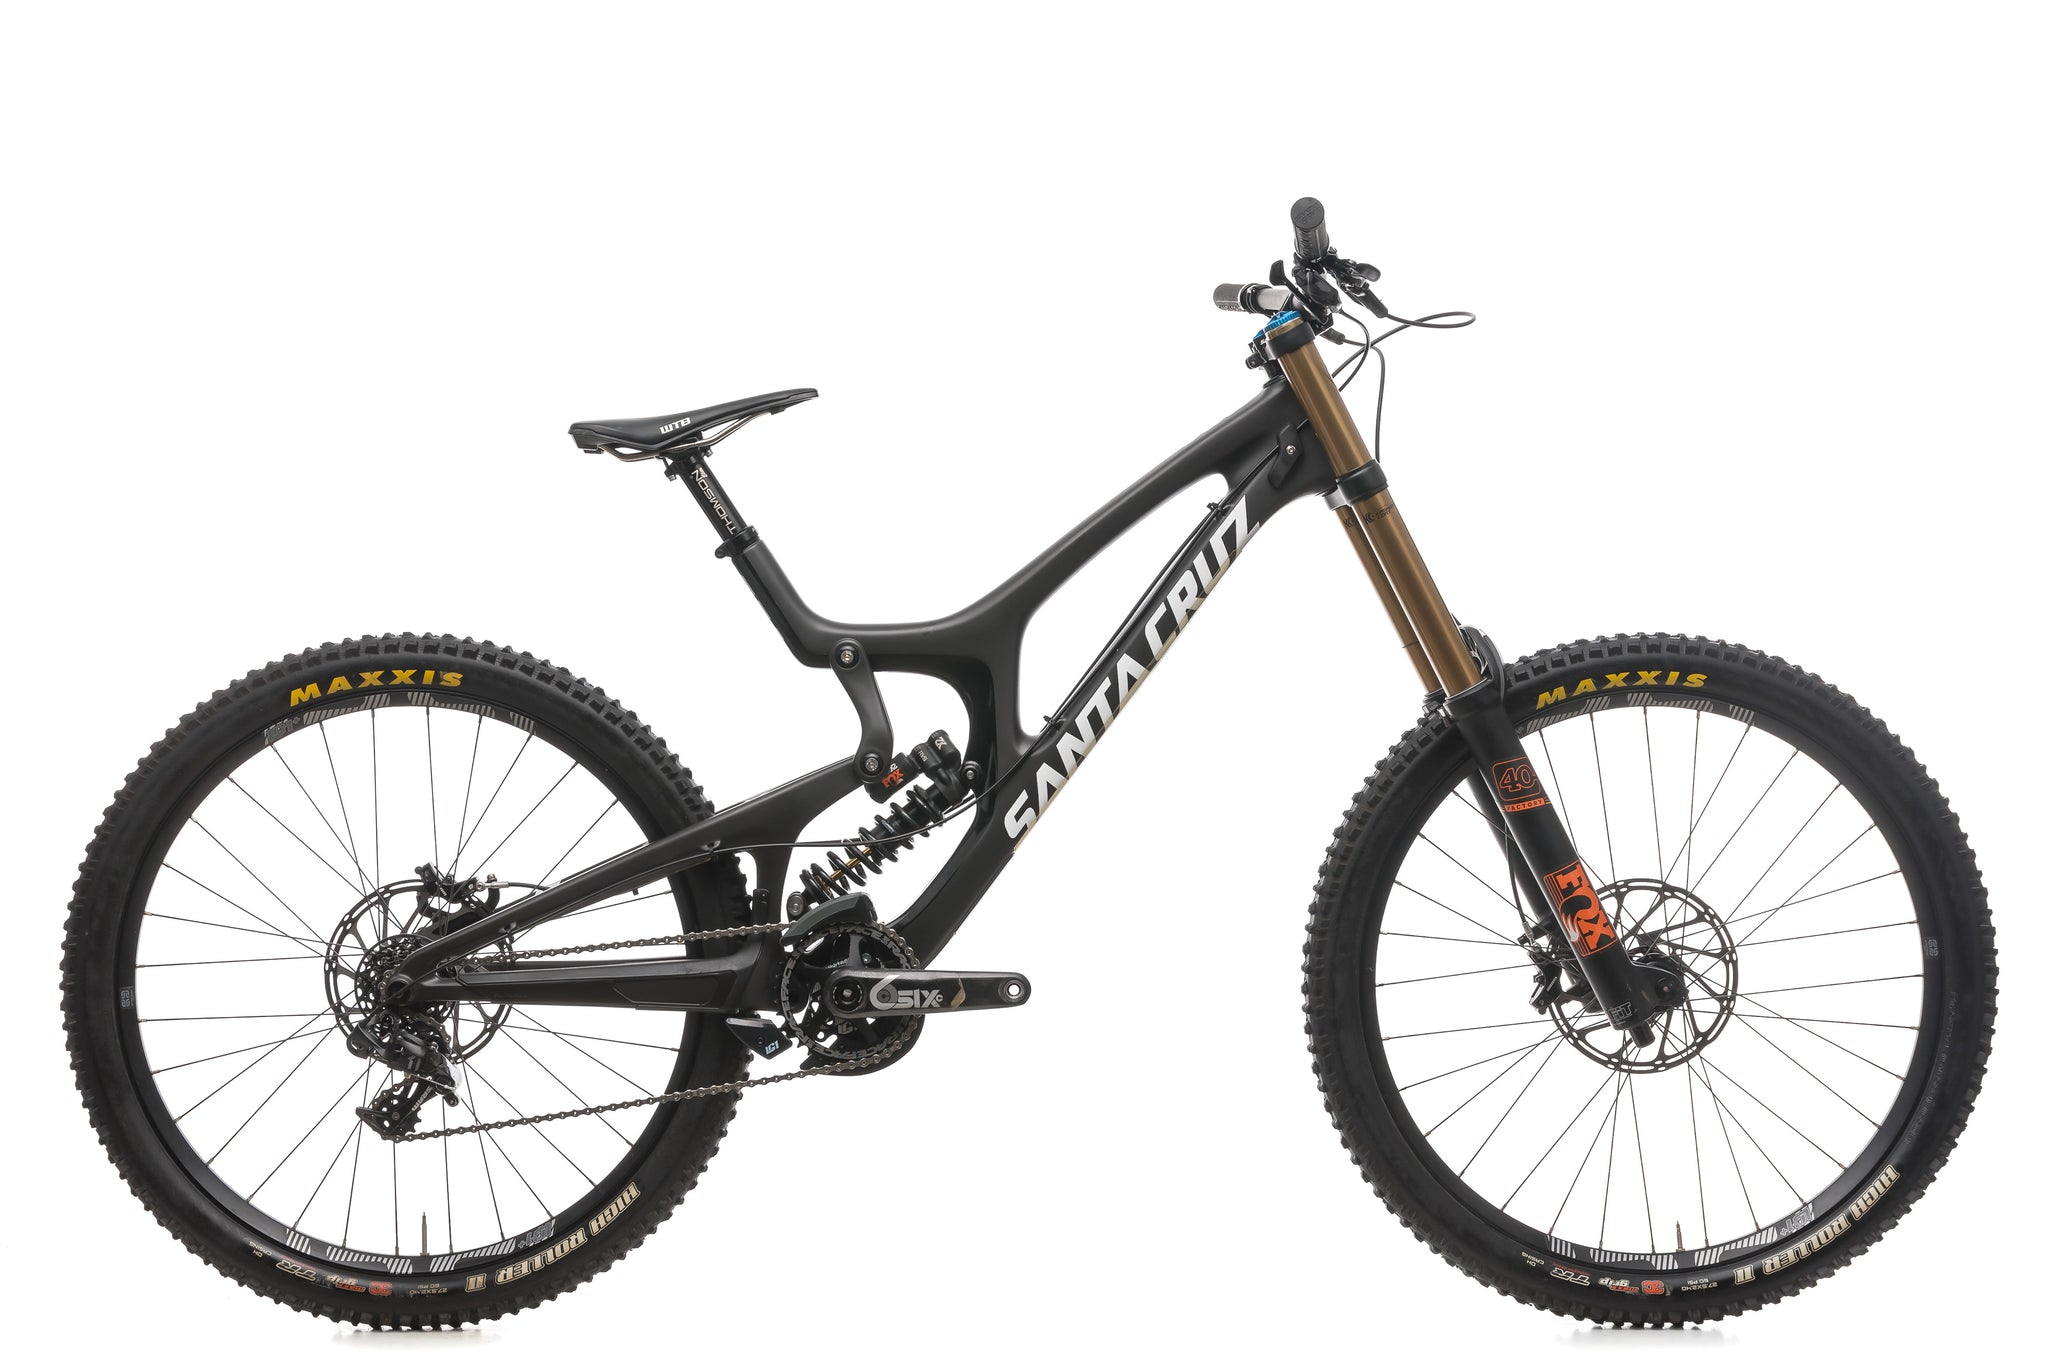 Santa Cruz V10 Used Mountain Bike